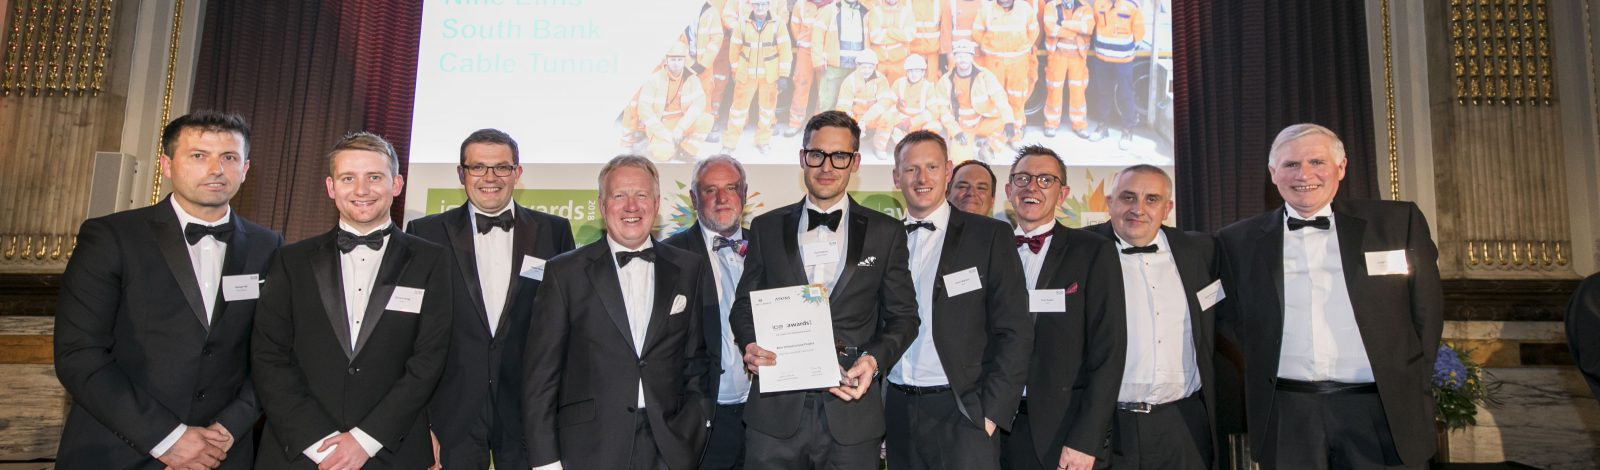 Nine Elms South Bank Cable Tunnel Wins Best Infrastructure Award 2018 - Clancy Docwra